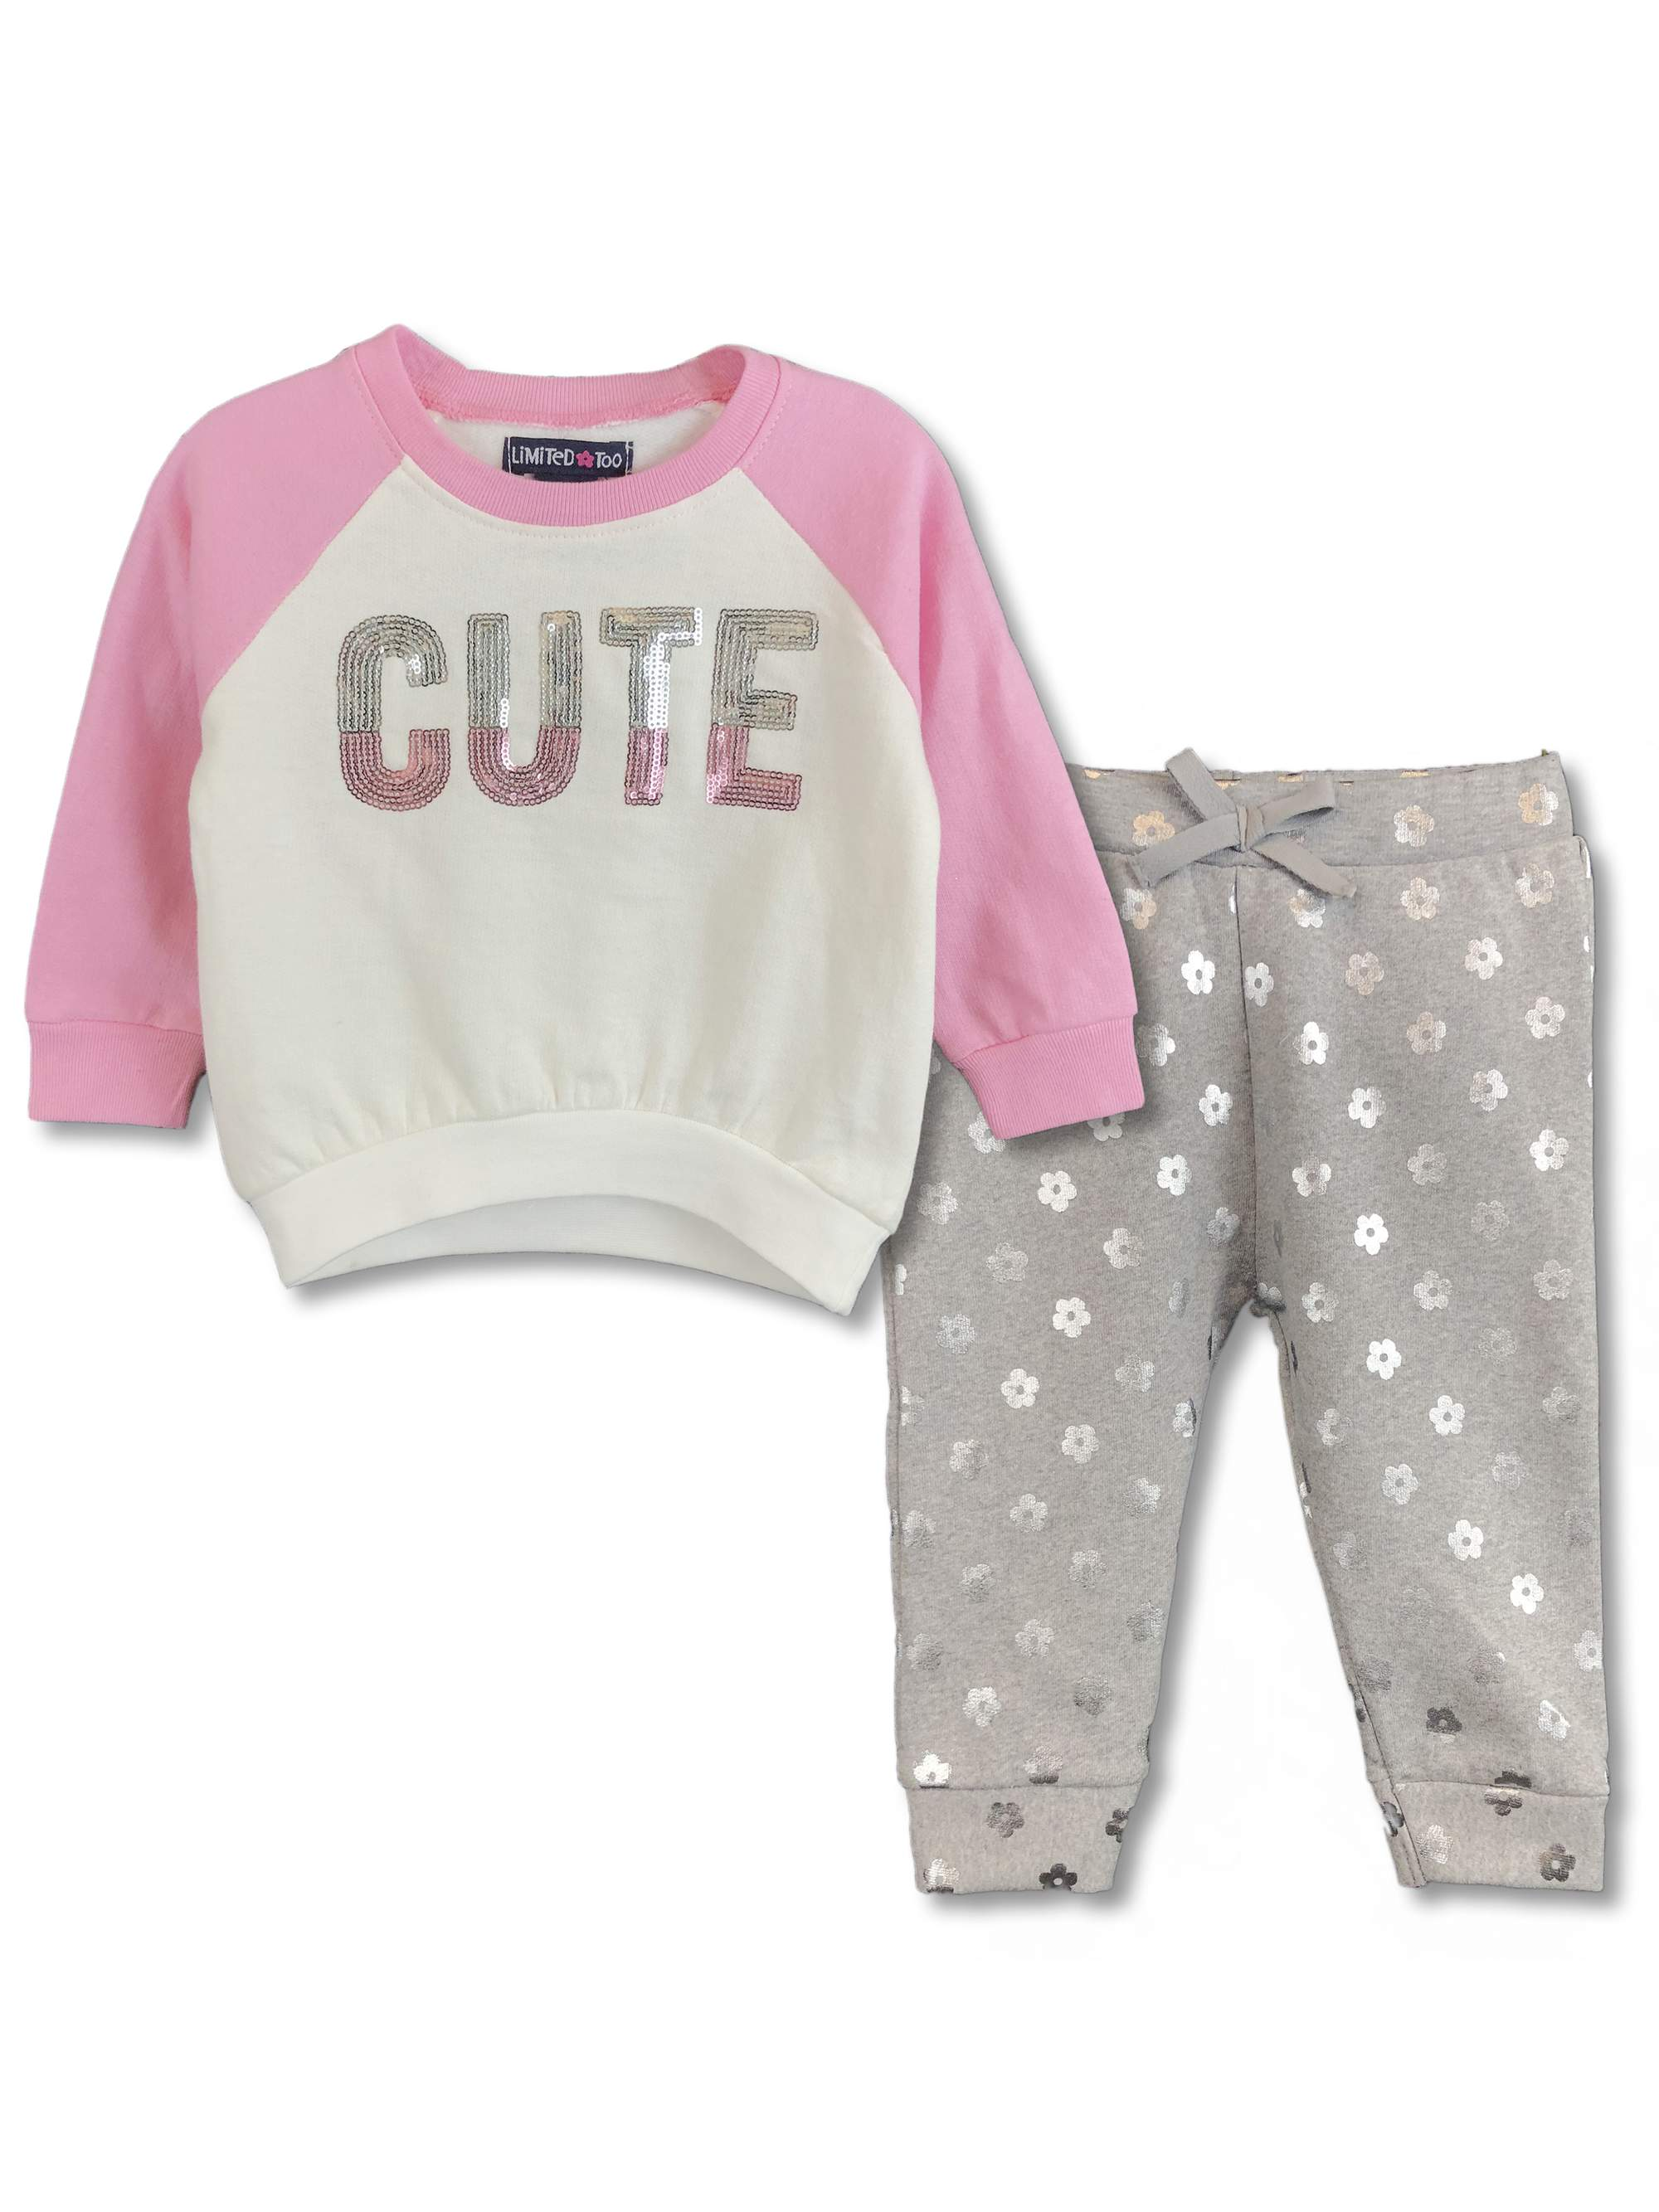 12 Infant /& Toddler Girls Limited Too $40-$42 2pc Shirt /& Jeans Sets Size 3//6m